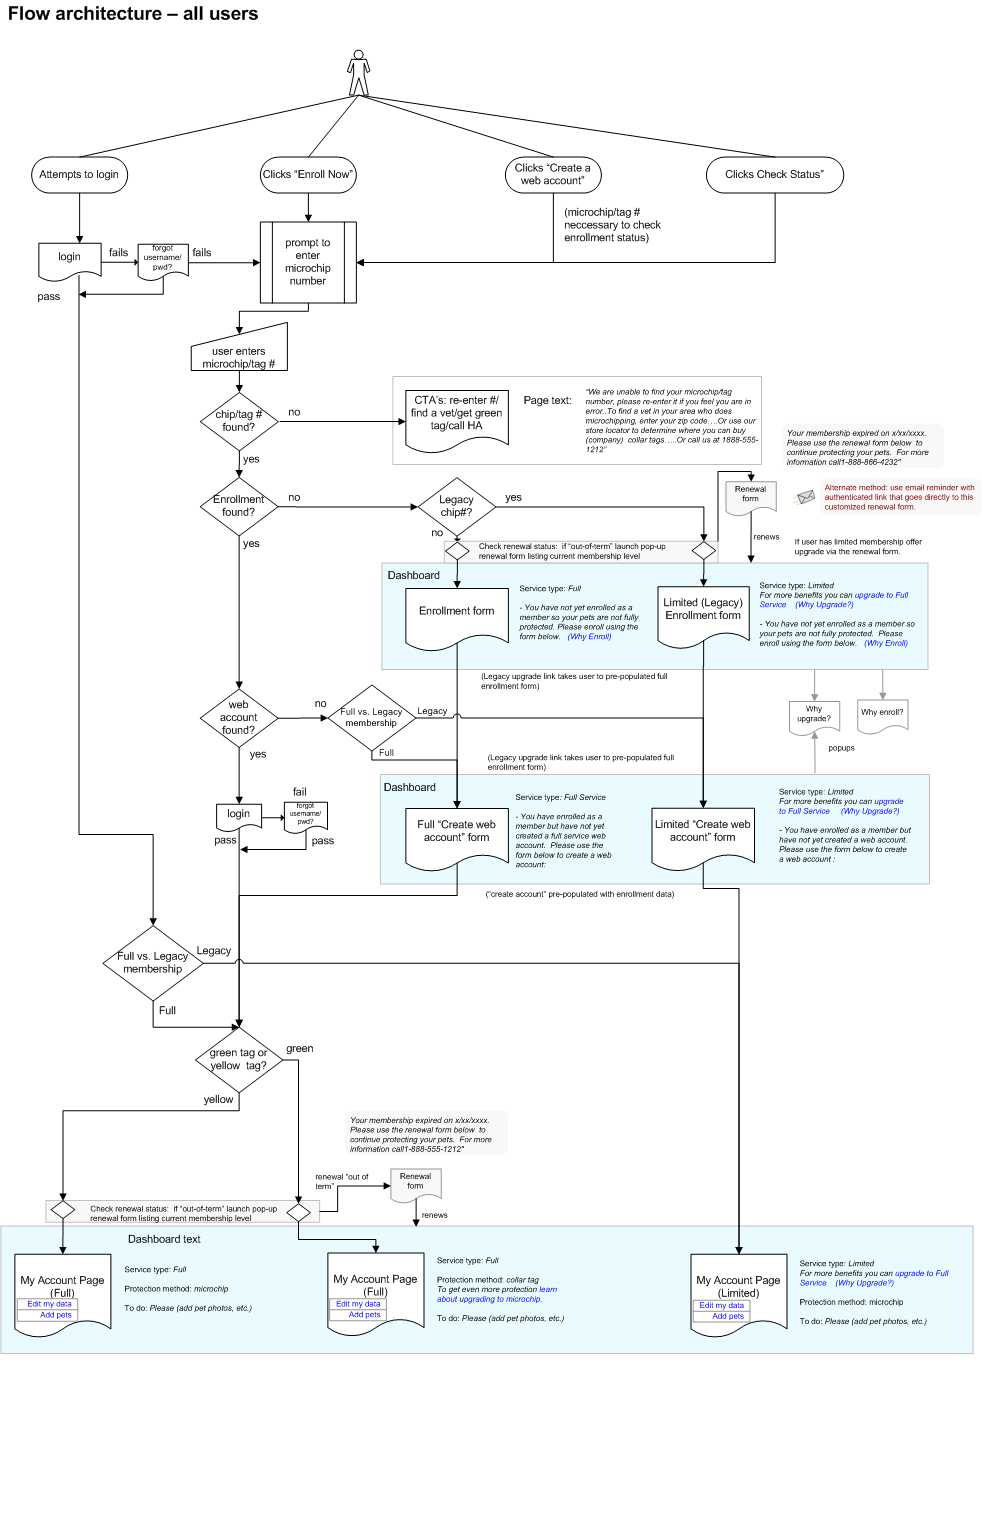 process flow for purchasing pet chip account and the levels of membership available